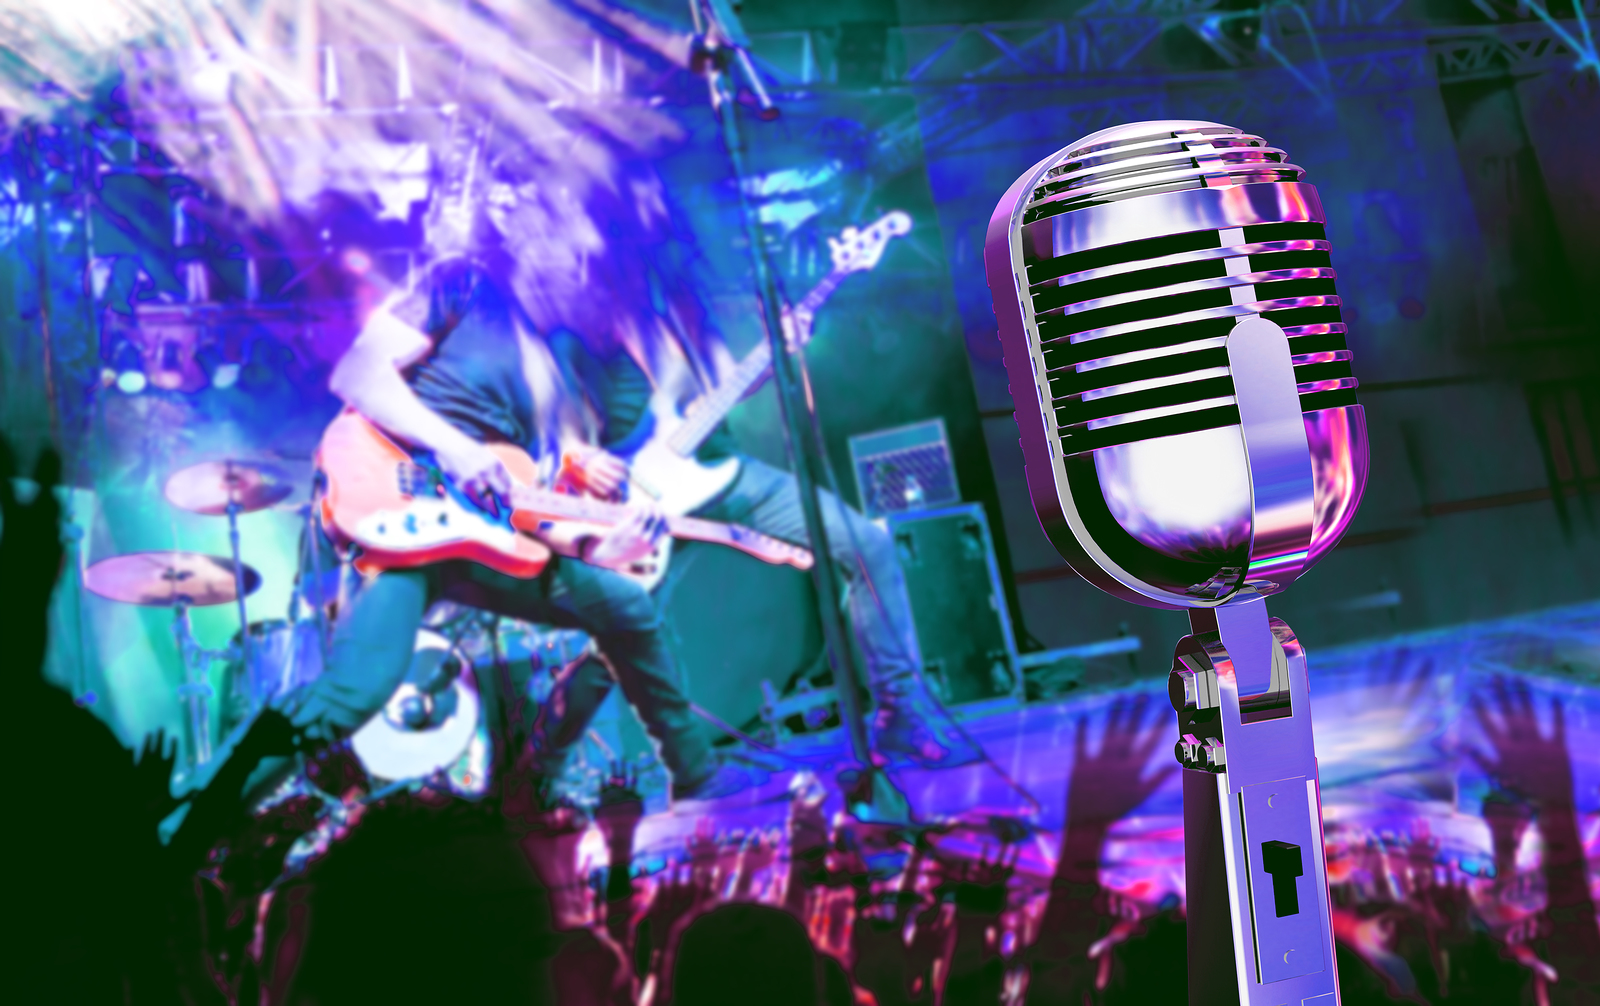 Live music and concert. Guitarist and music band background. Night entertainment and festival events.Musical performance on stage. Recreation and music show.